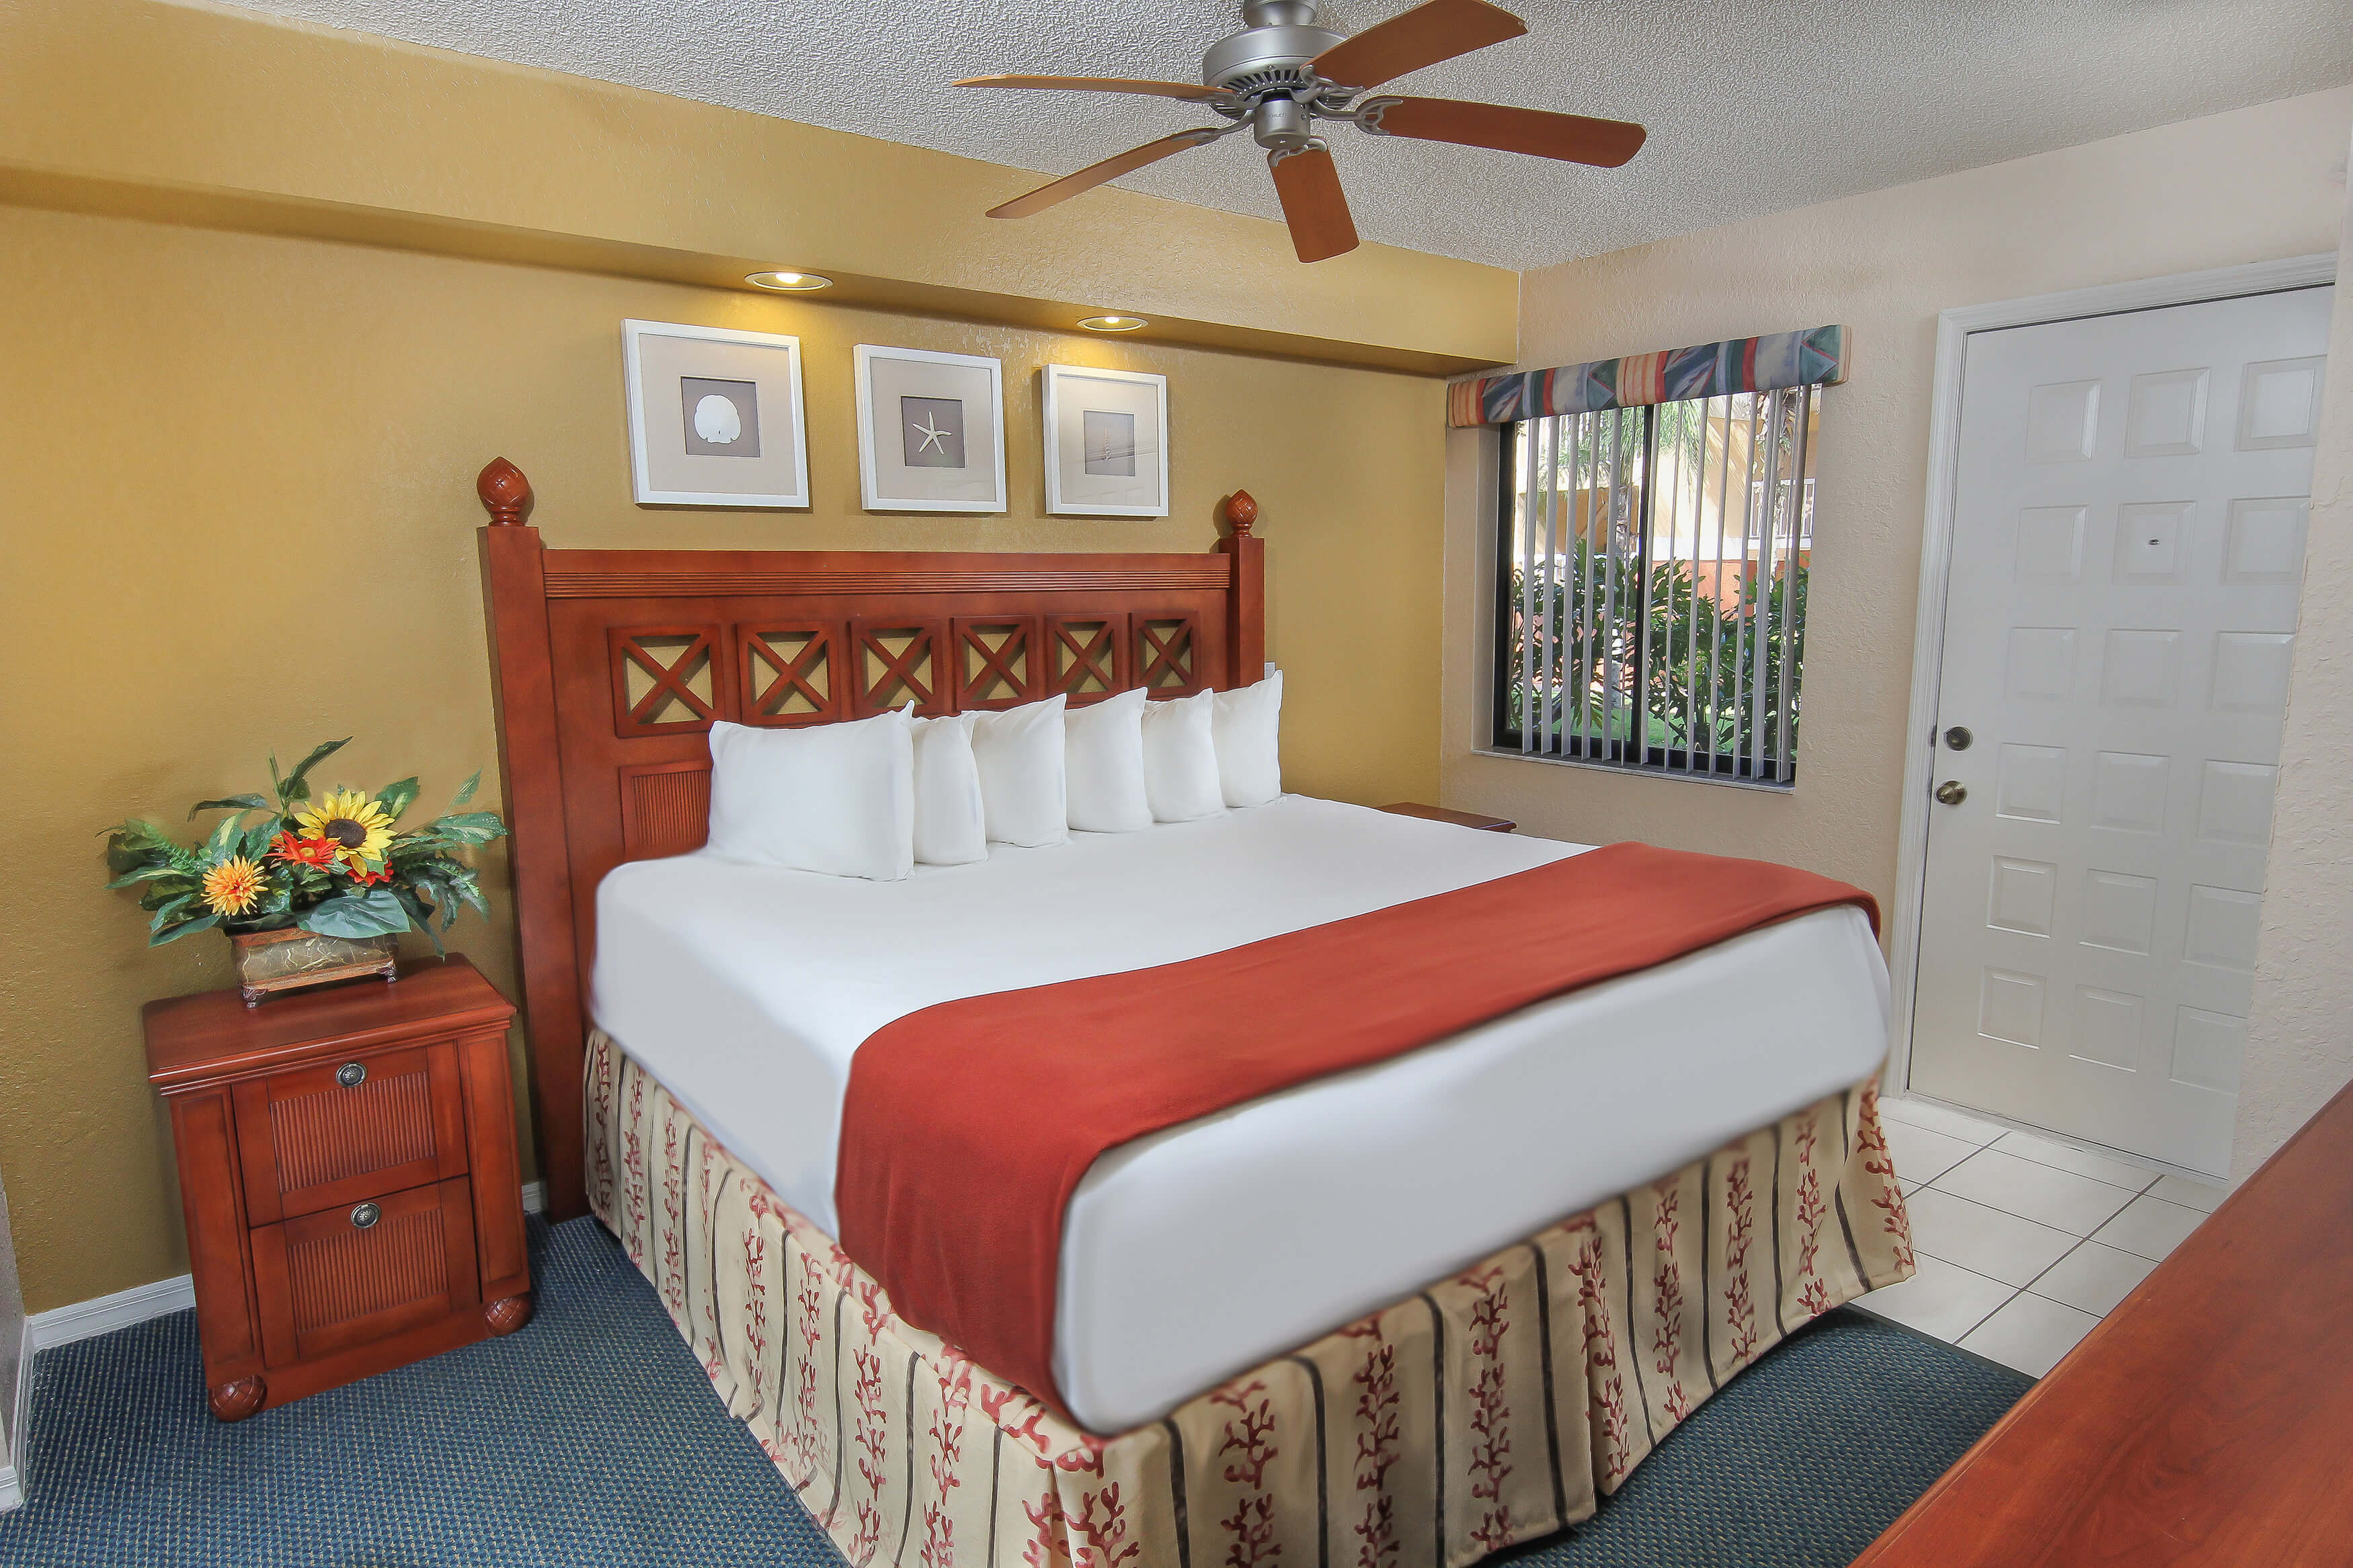 2 Bedroom Suites In Orlando Westgate Vacation Villas Resort Spa Orlando Westgate Resorts